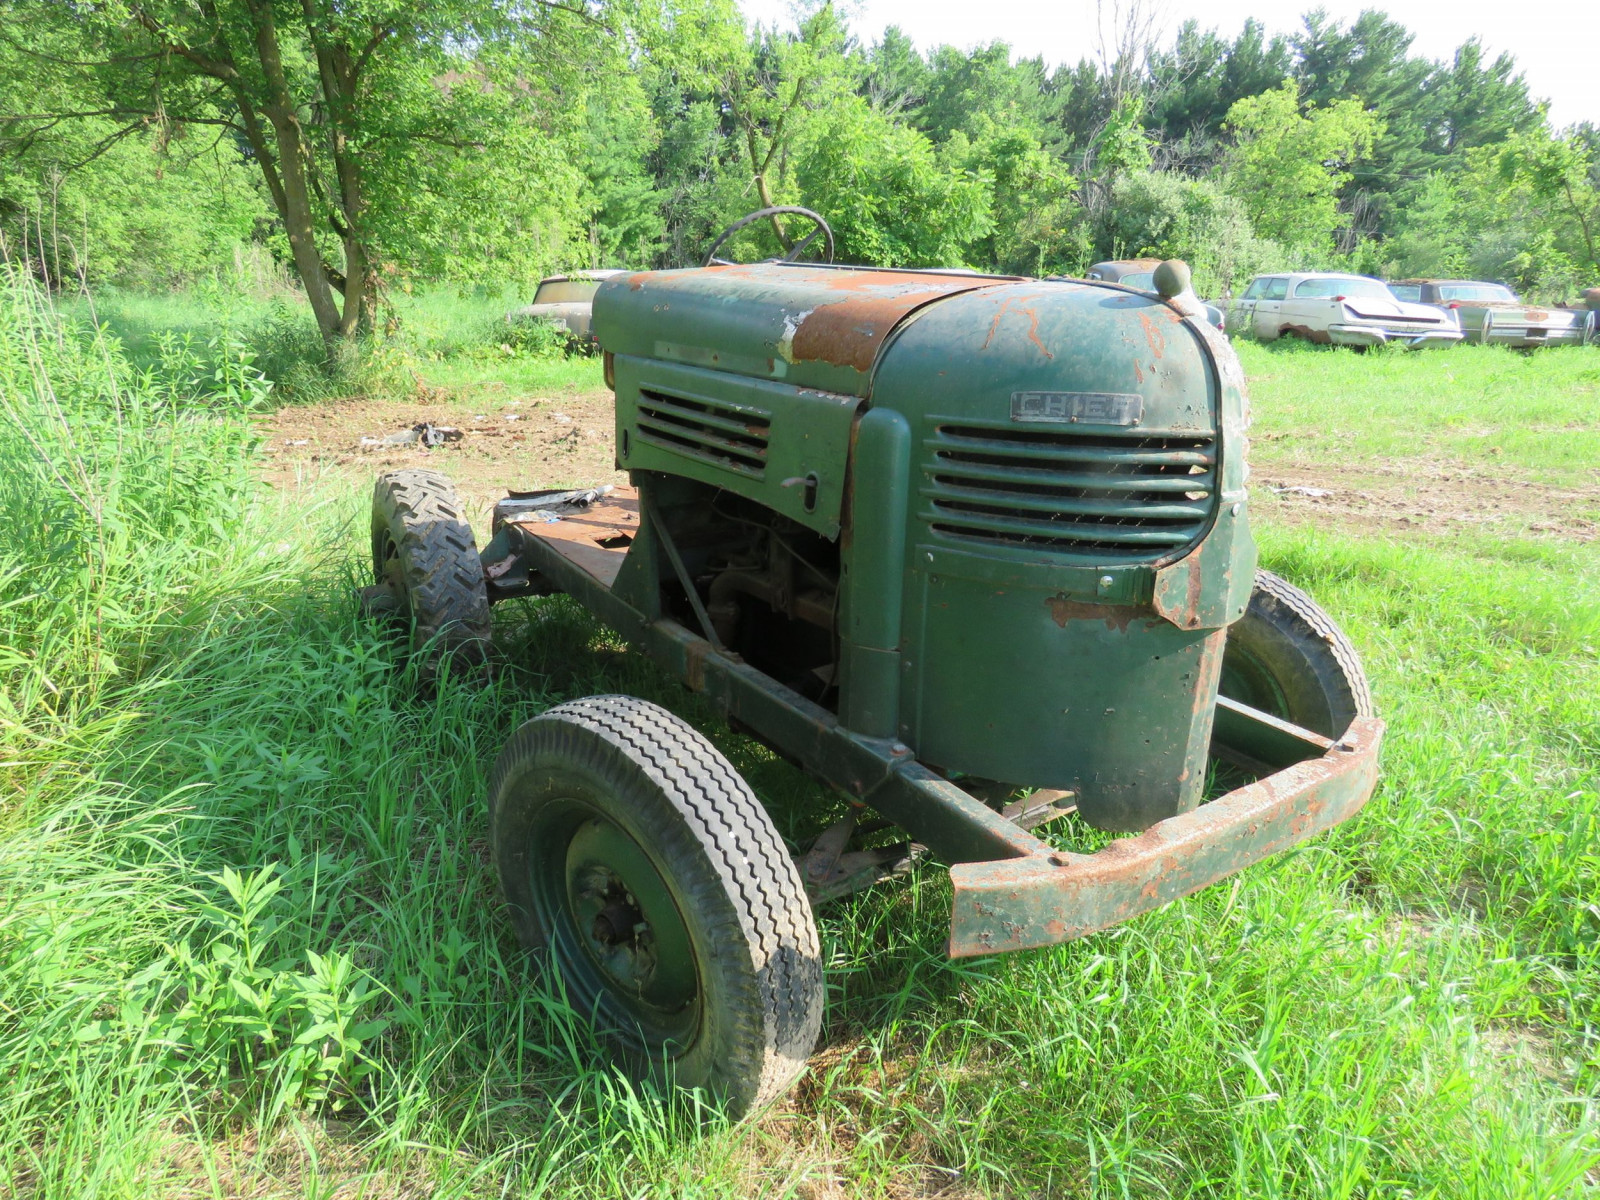 Worthington Mower Chief Lawn Tractor - Image 2